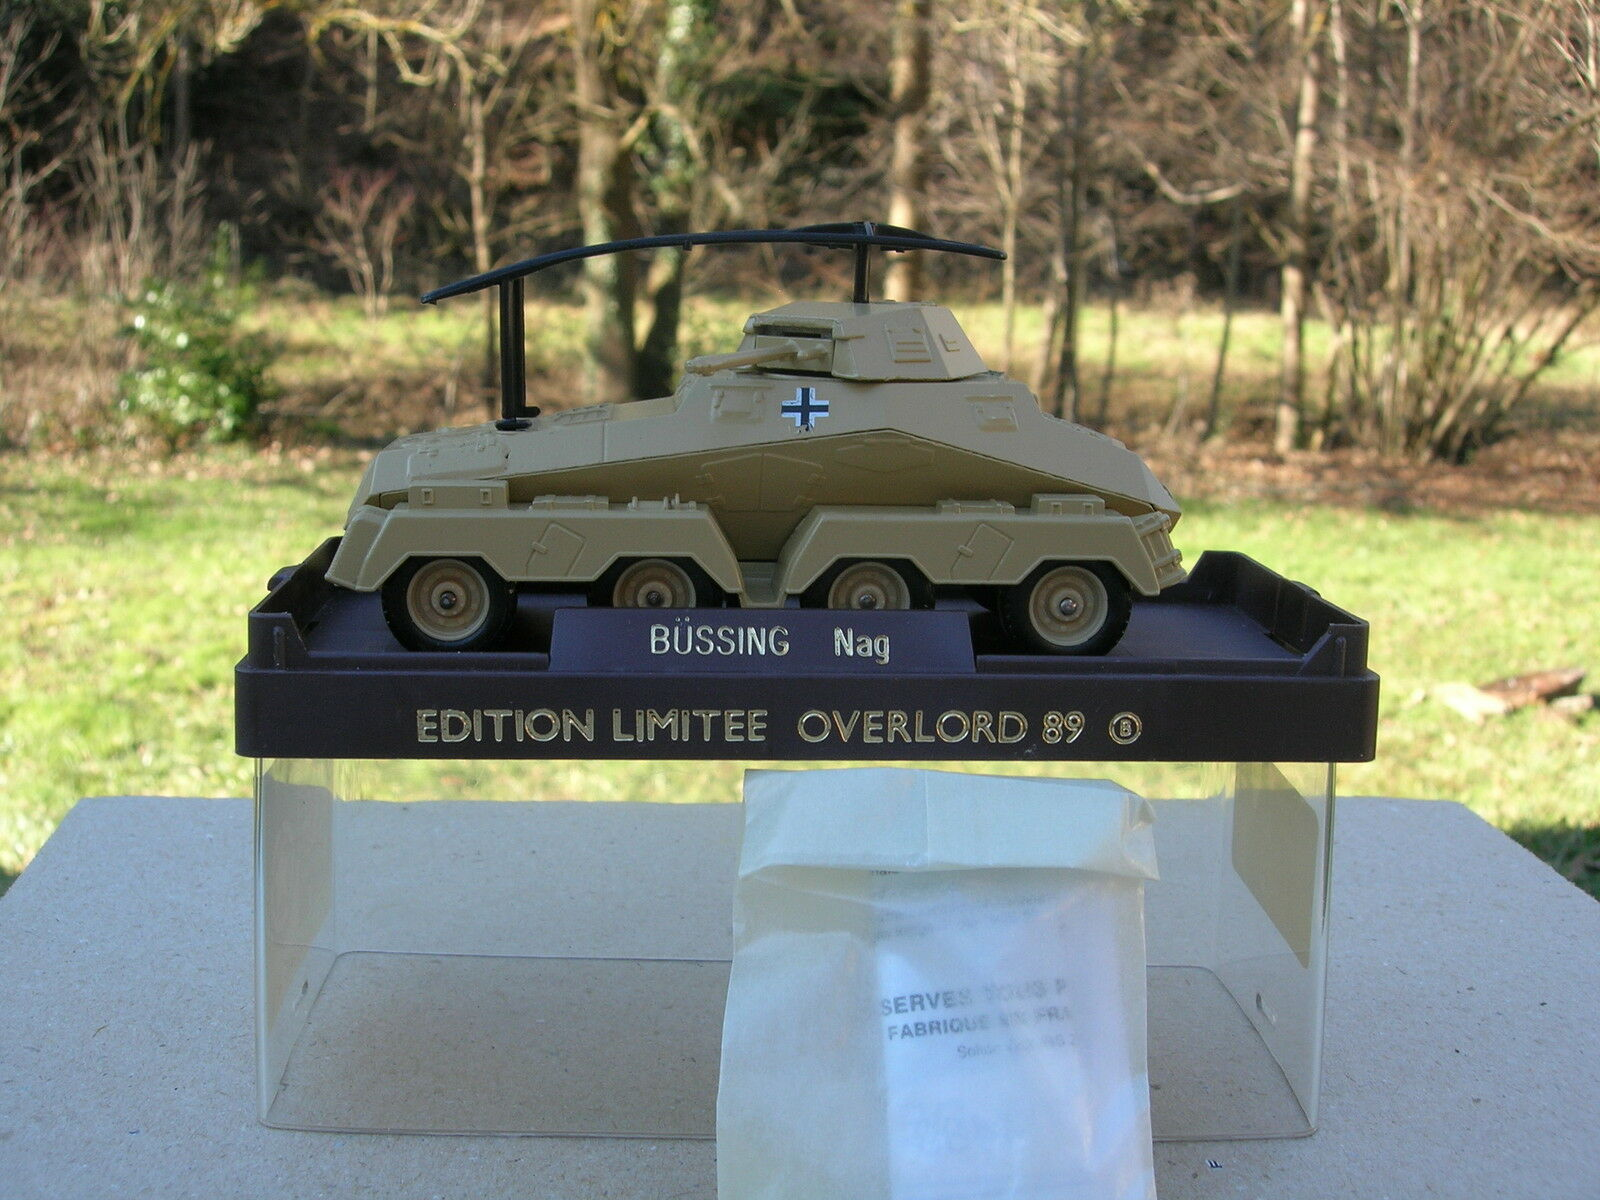 SOLIDO 1 50 RARE MILITAIRE,BUSSING 8X8 RADIO ALLEMAND serie limitée OVERLORD